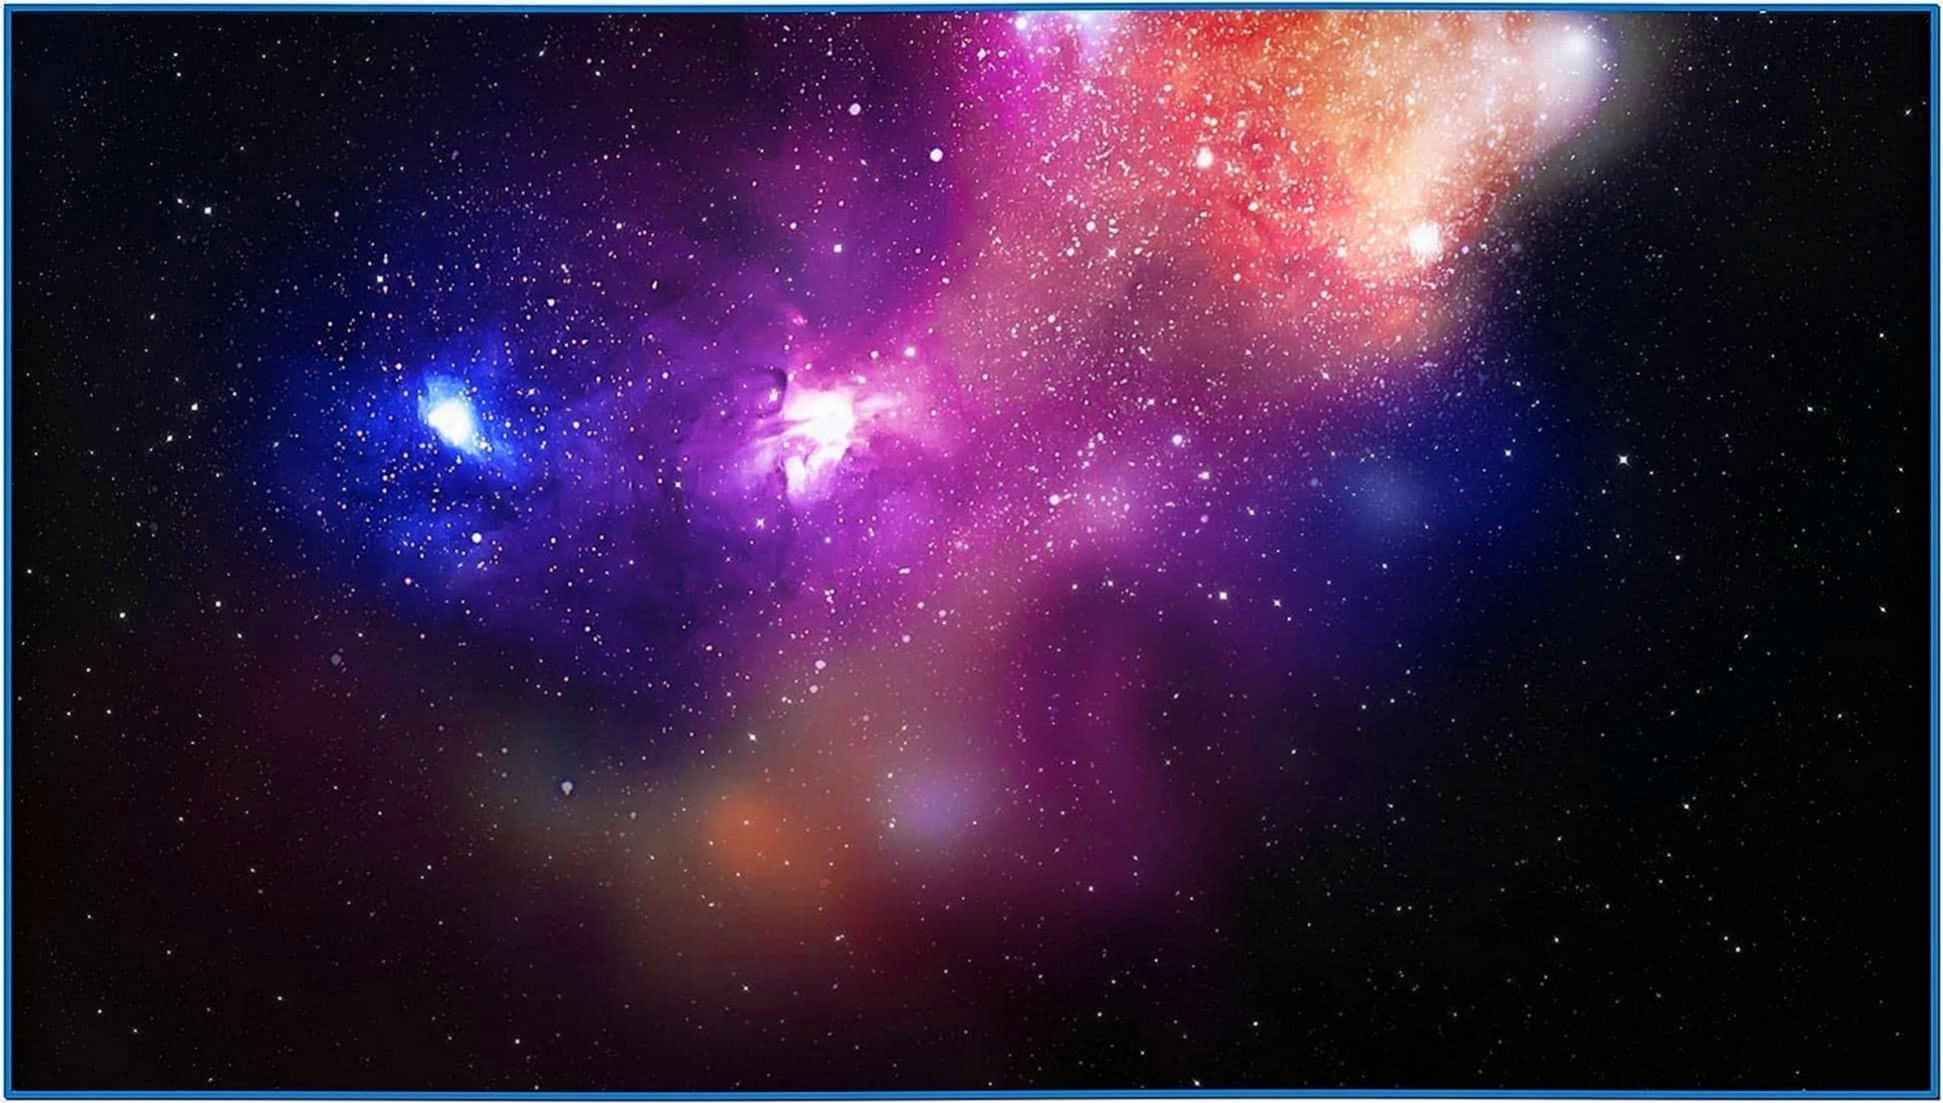 Space Screensaver Mac Lion